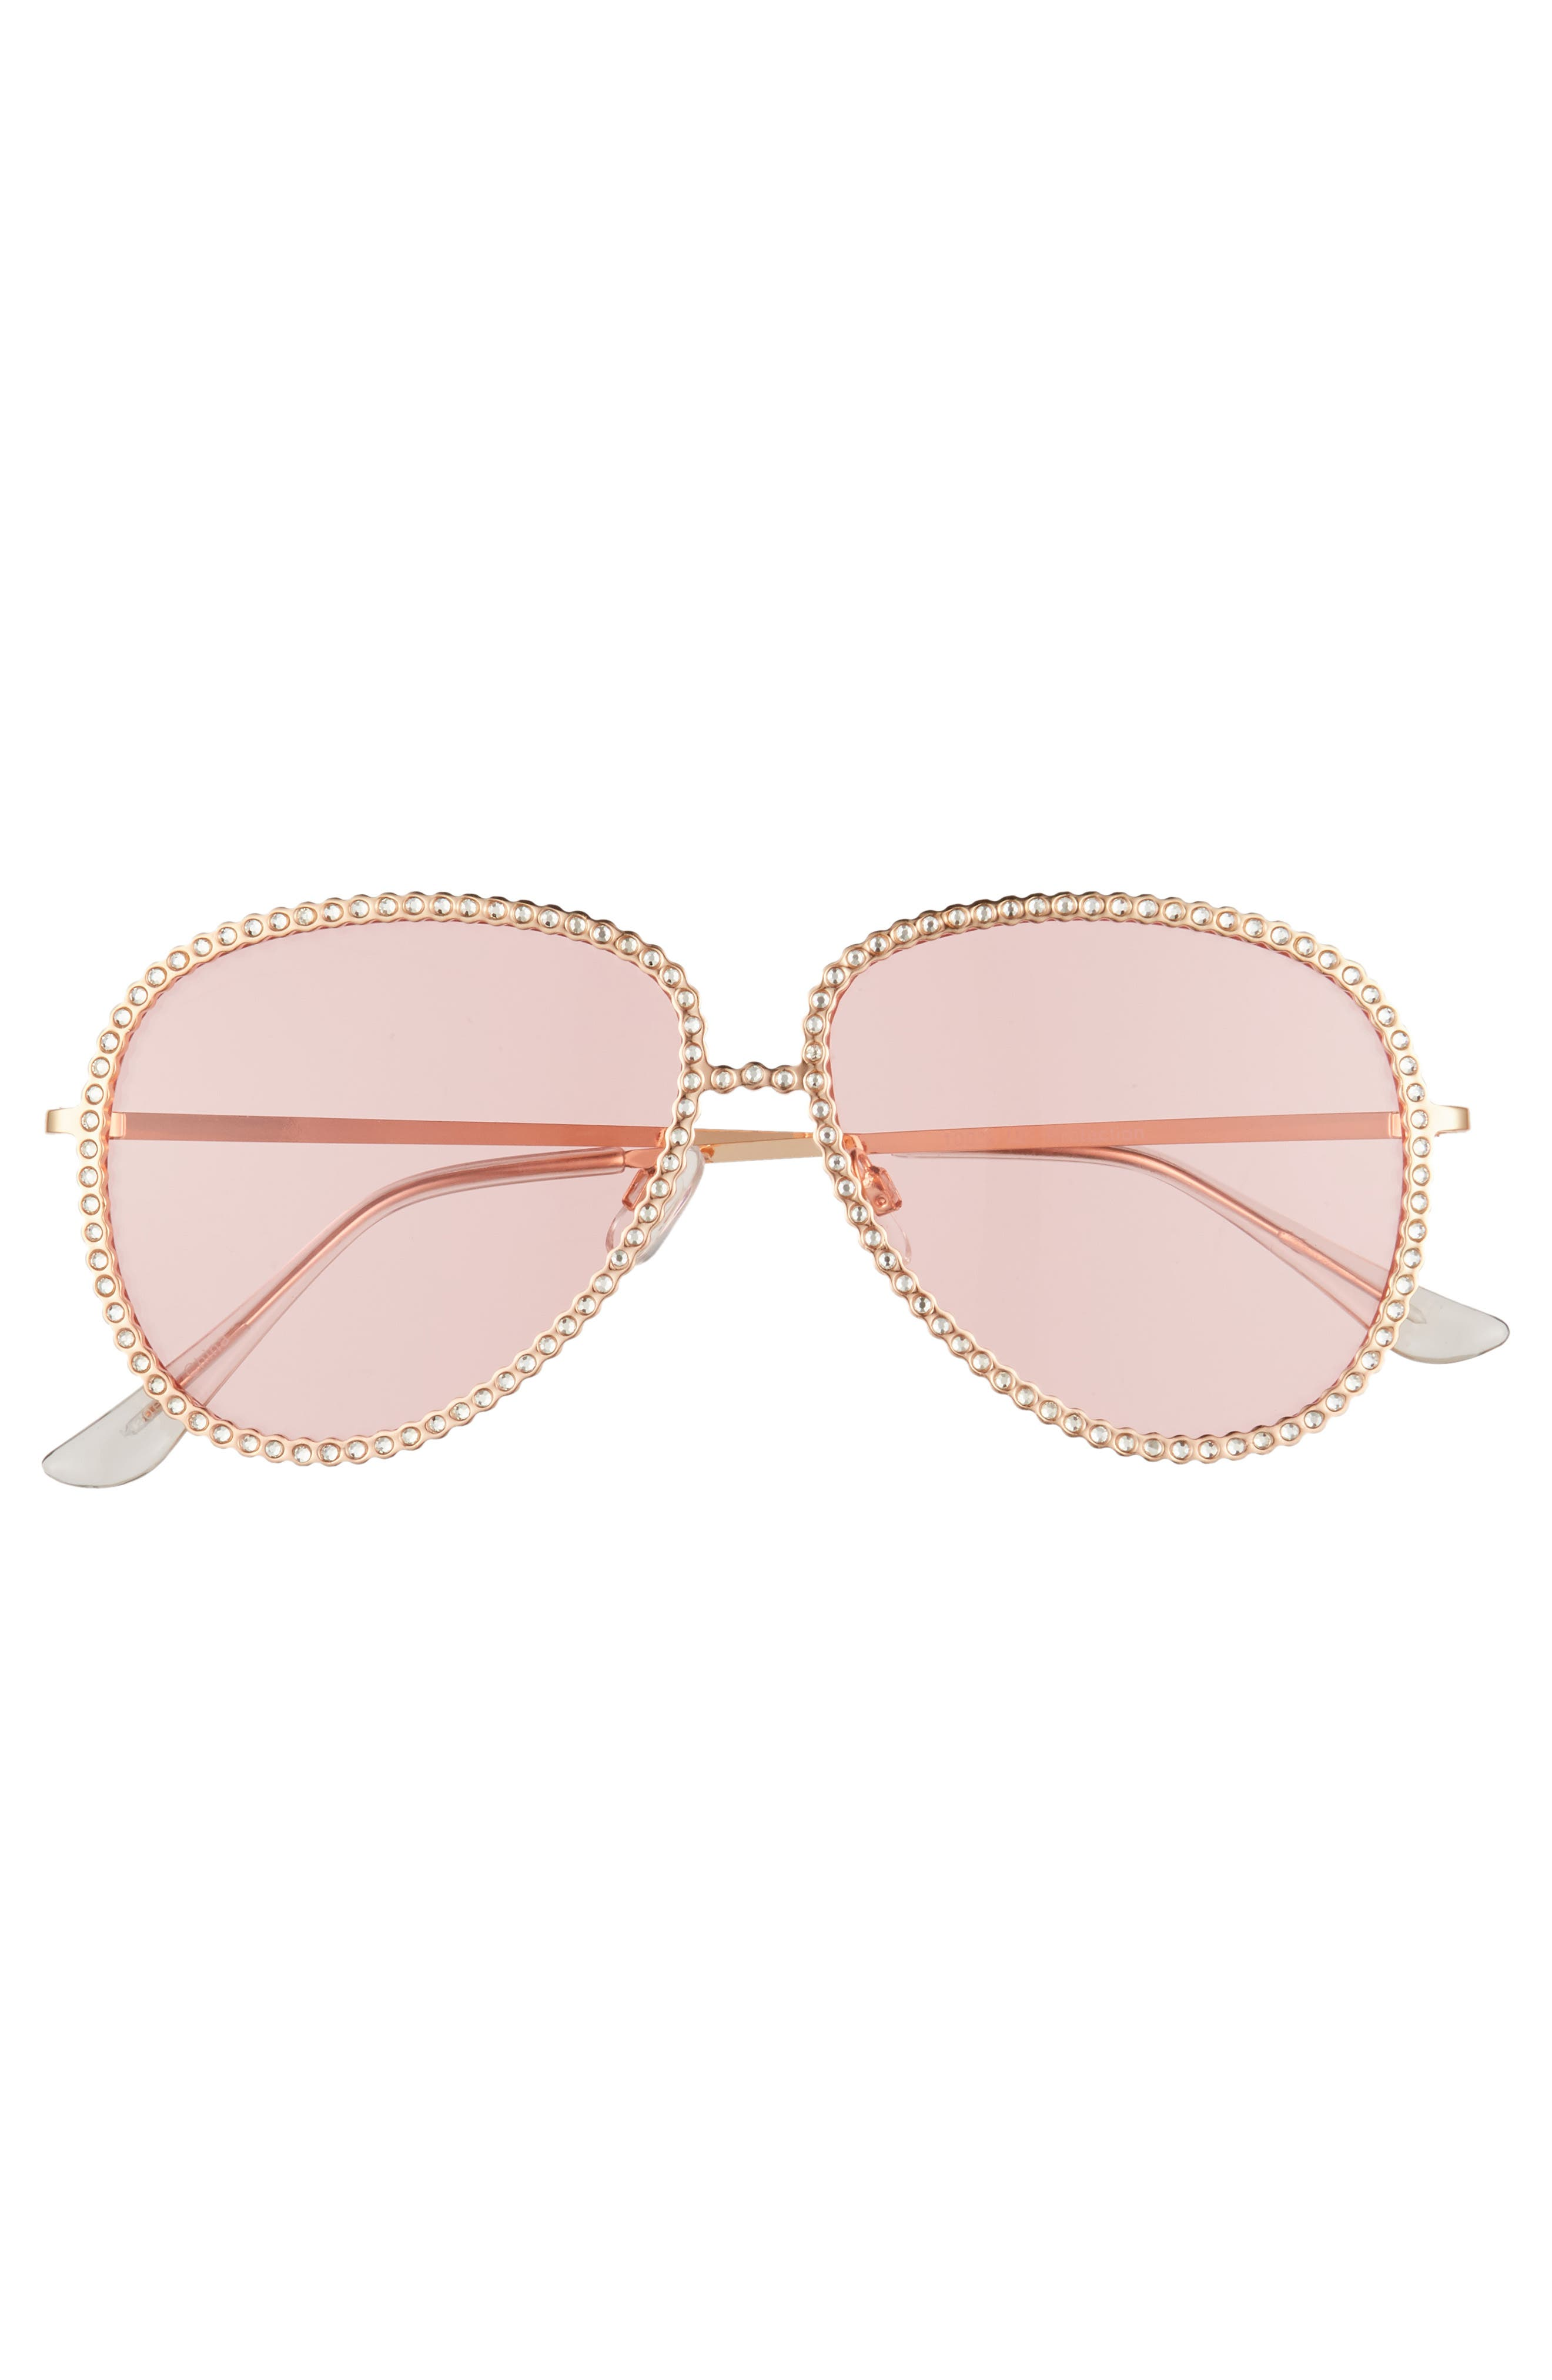 58mm Crystal Aviator Sunglasses,                             Alternate thumbnail 3, color,